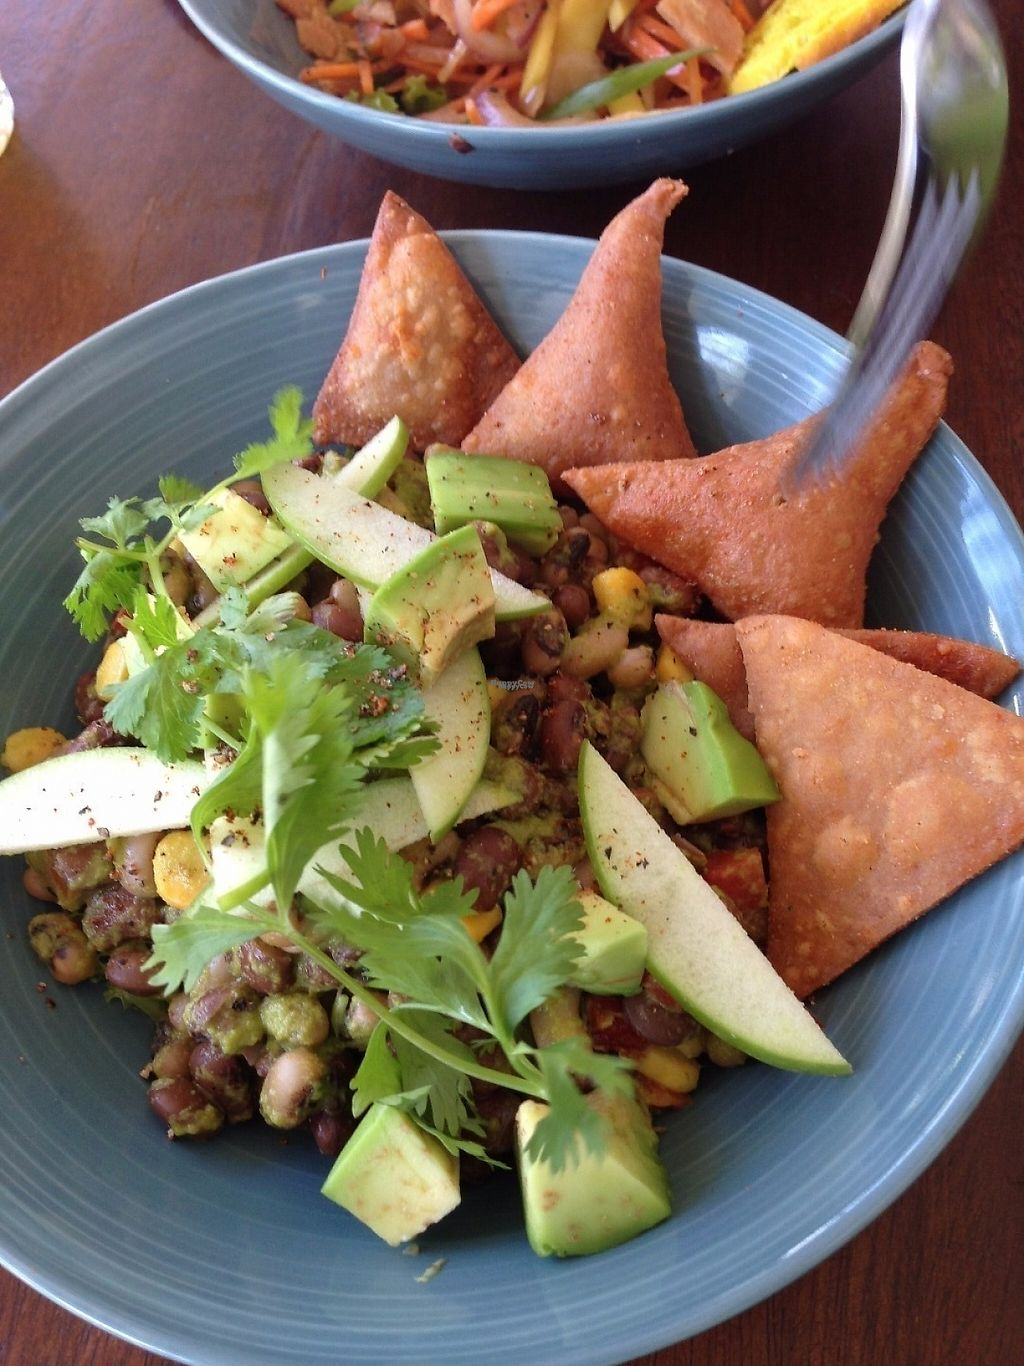 """Photo of Cafe Kumbuk Good Market  by <a href=""""/members/profile/CatDouglas"""">CatDouglas</a> <br/>Tex mex salad <br/> February 28, 2017  - <a href='/contact/abuse/image/86812/231168'>Report</a>"""